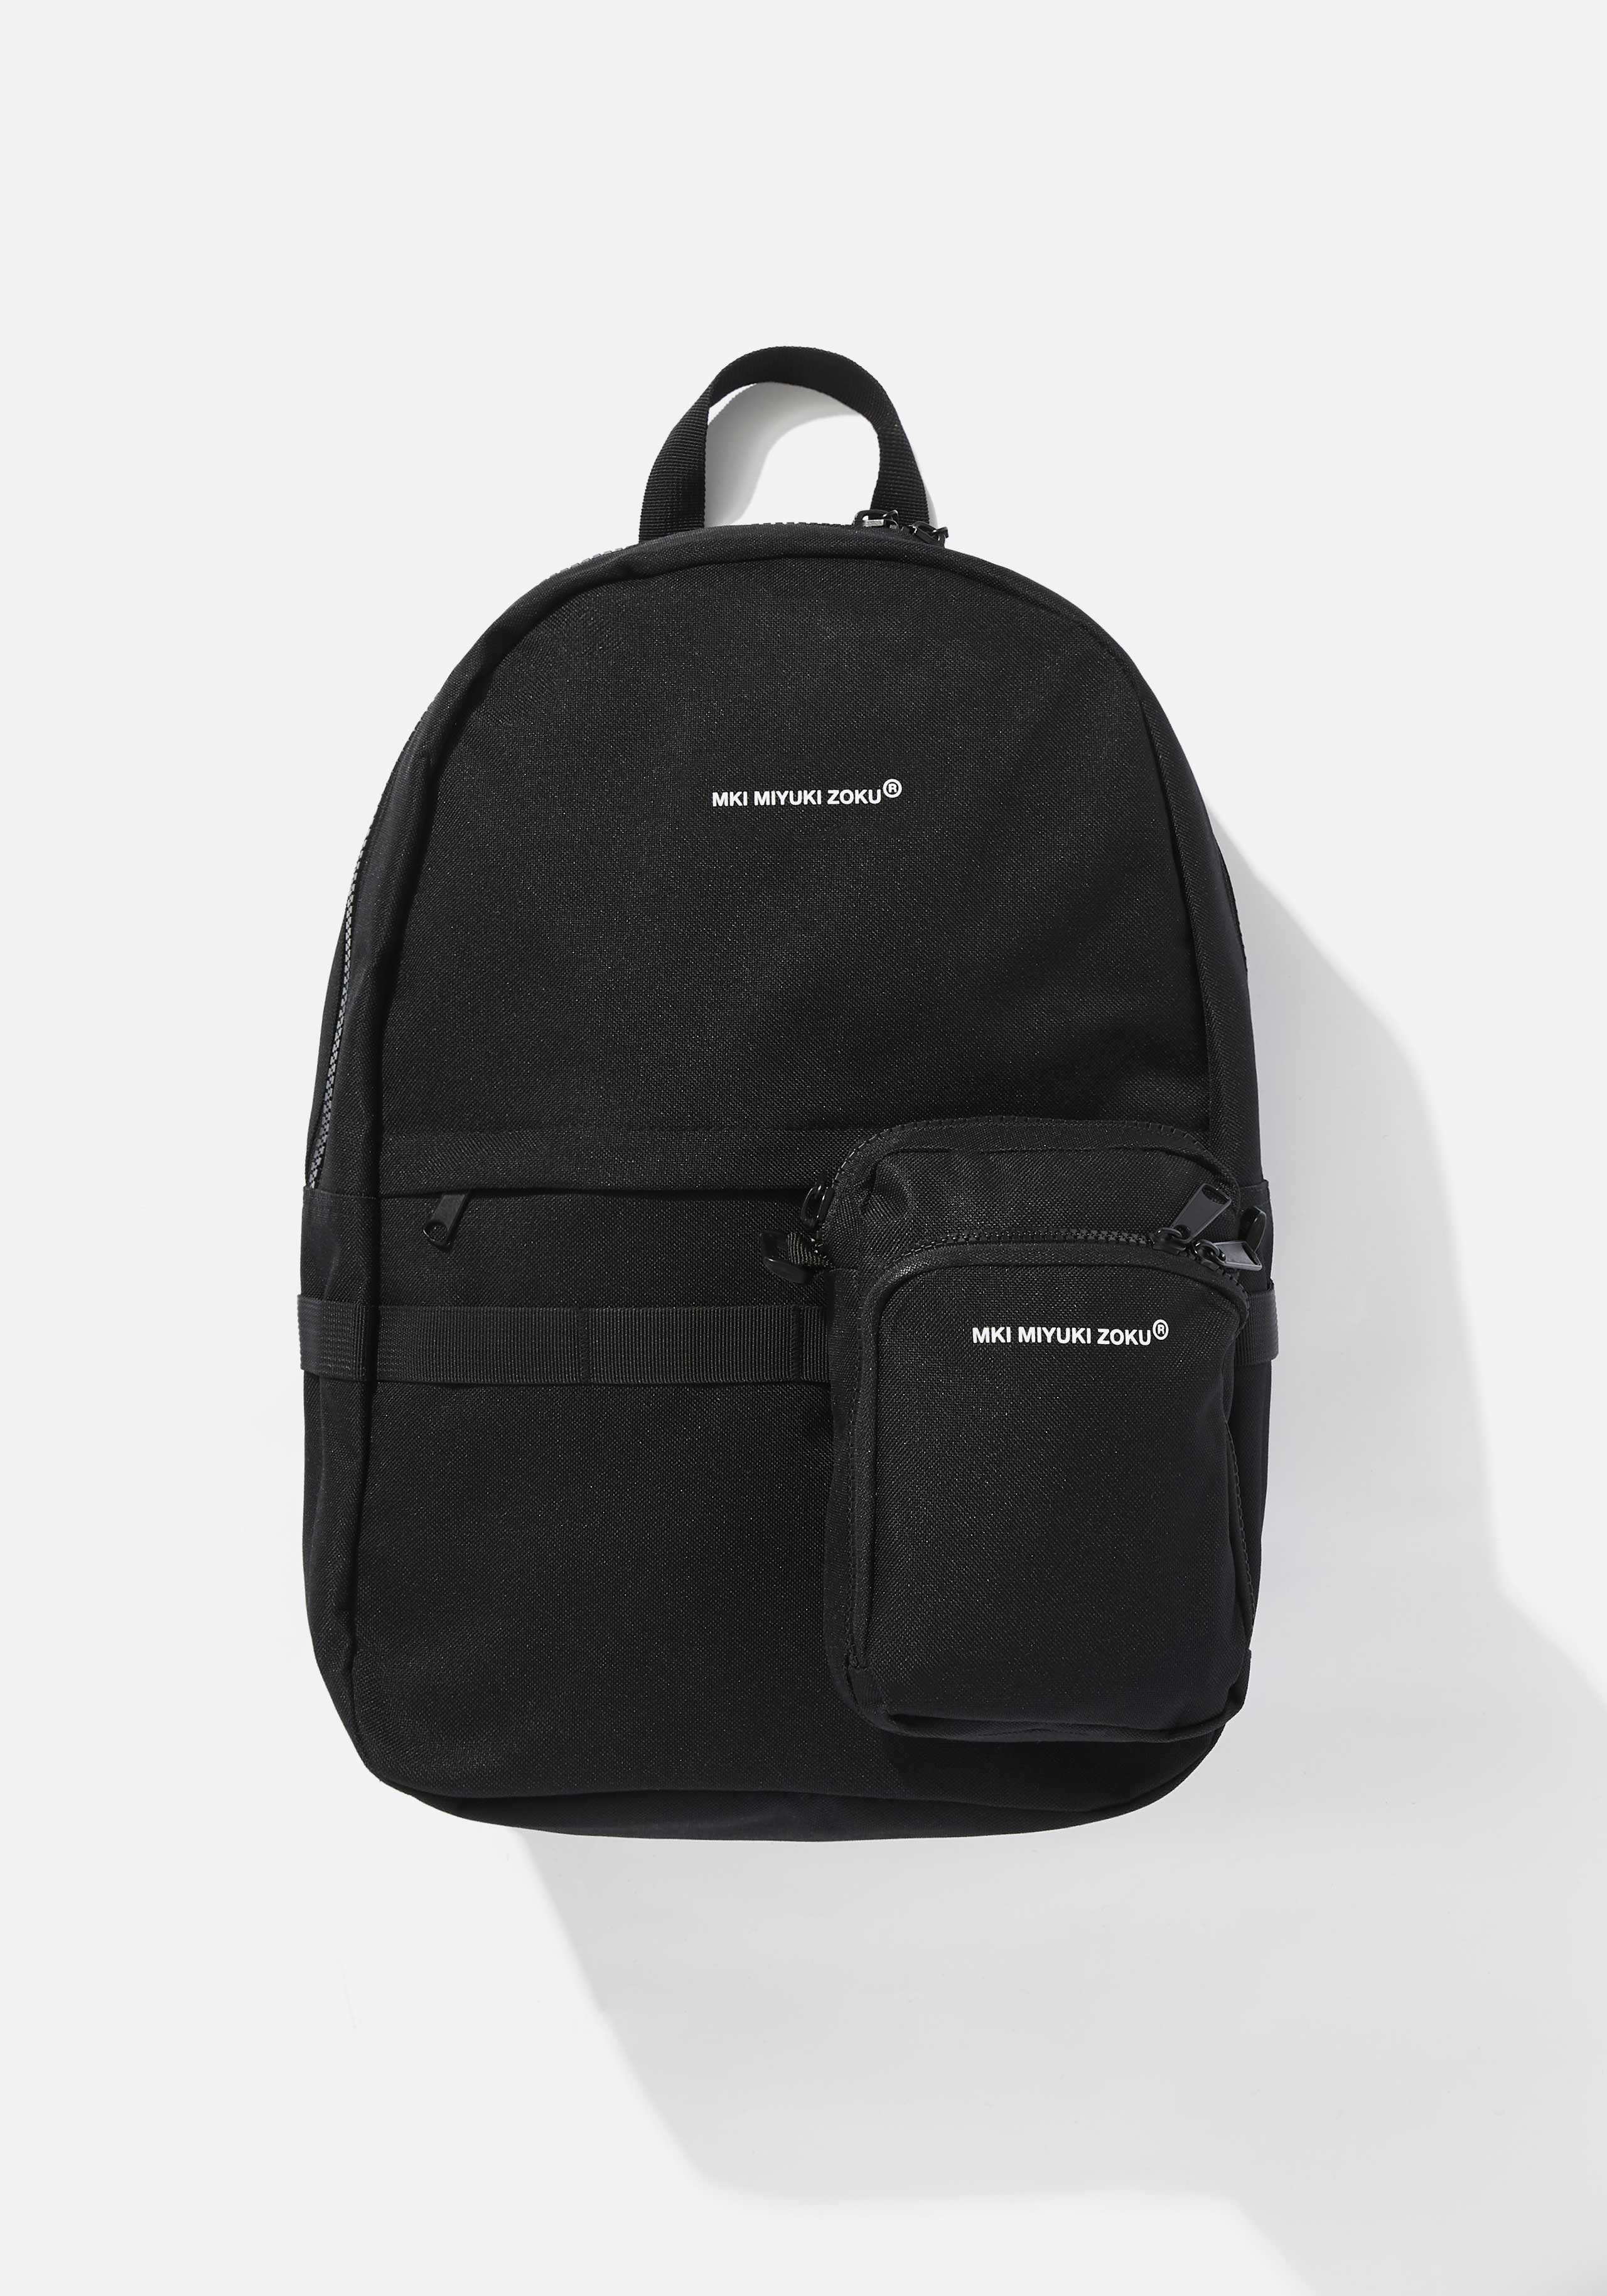 mki itc backpack 3